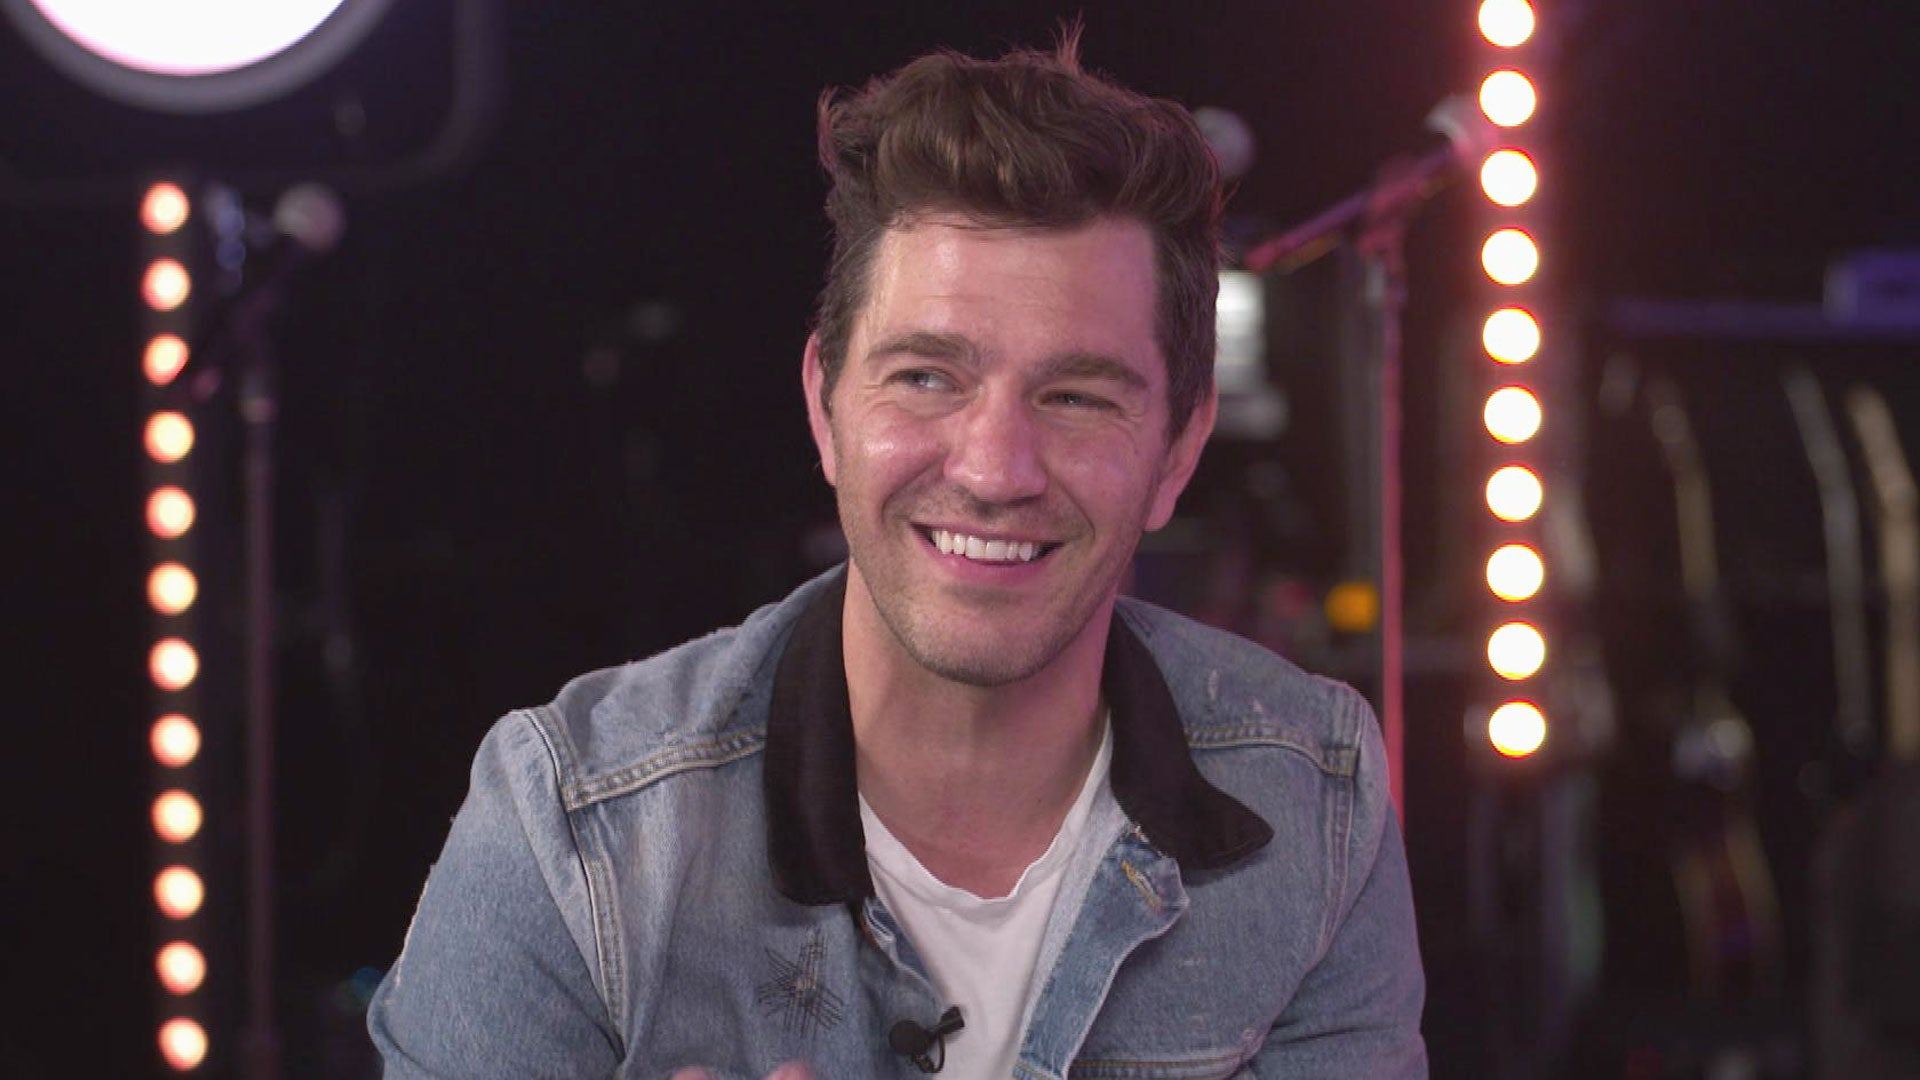 Andy Grammer Announces He's Expecting a New Baby With Epic Instagram Post